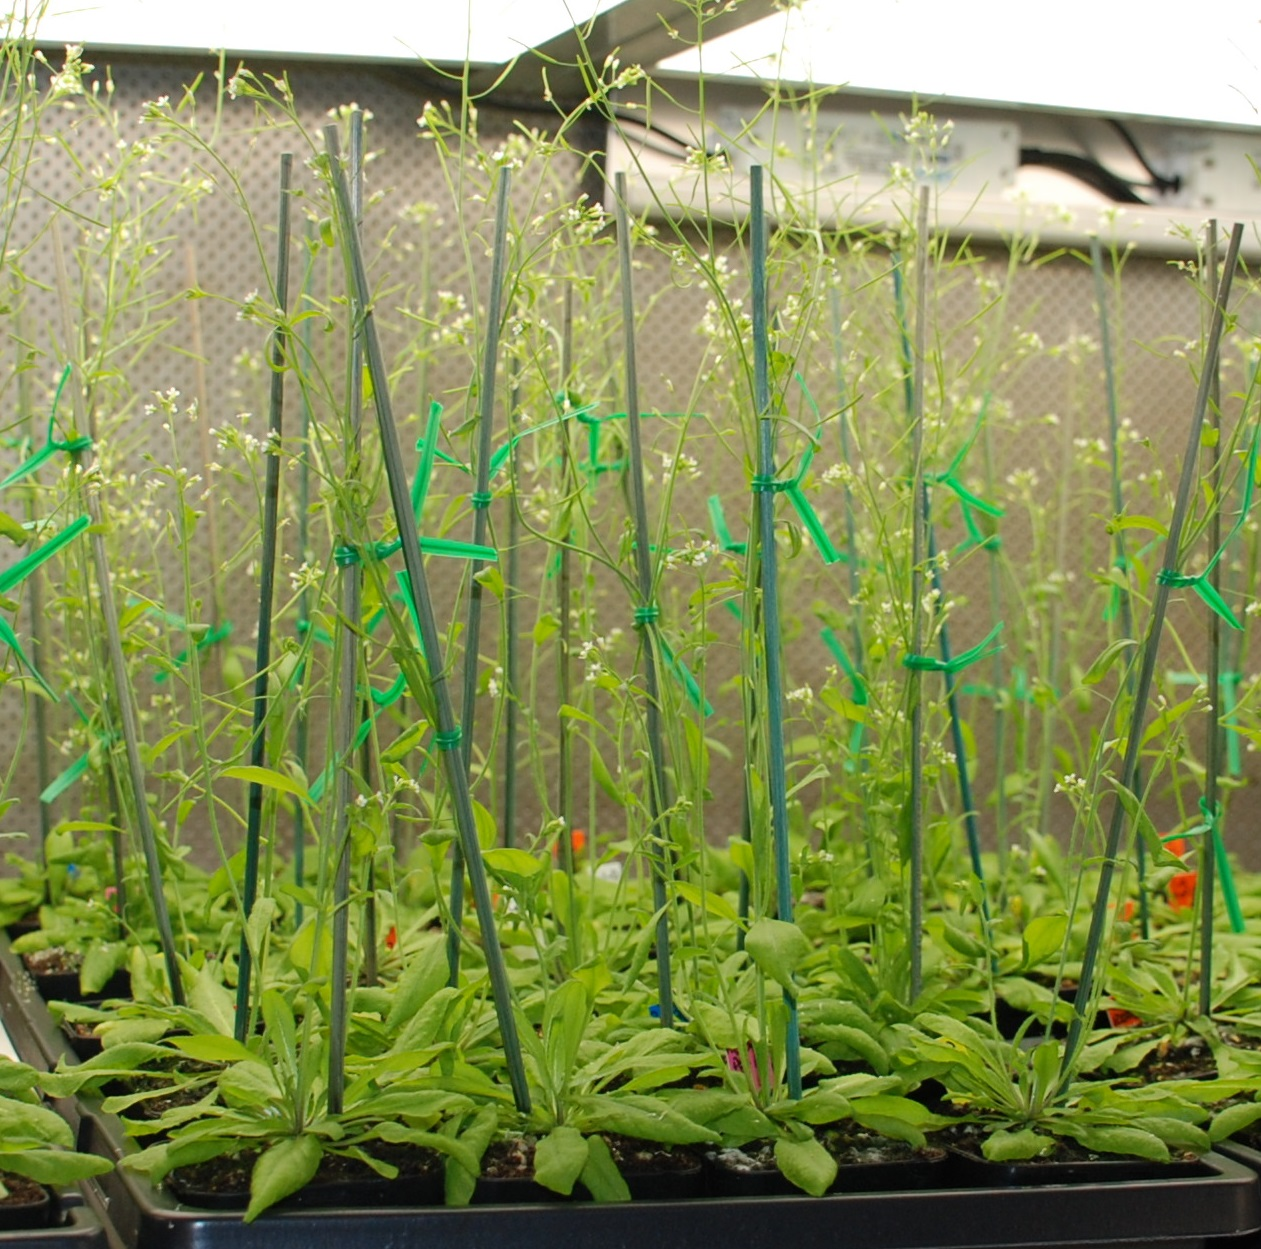 Biologists Develop Defense to Fight Crop Infections